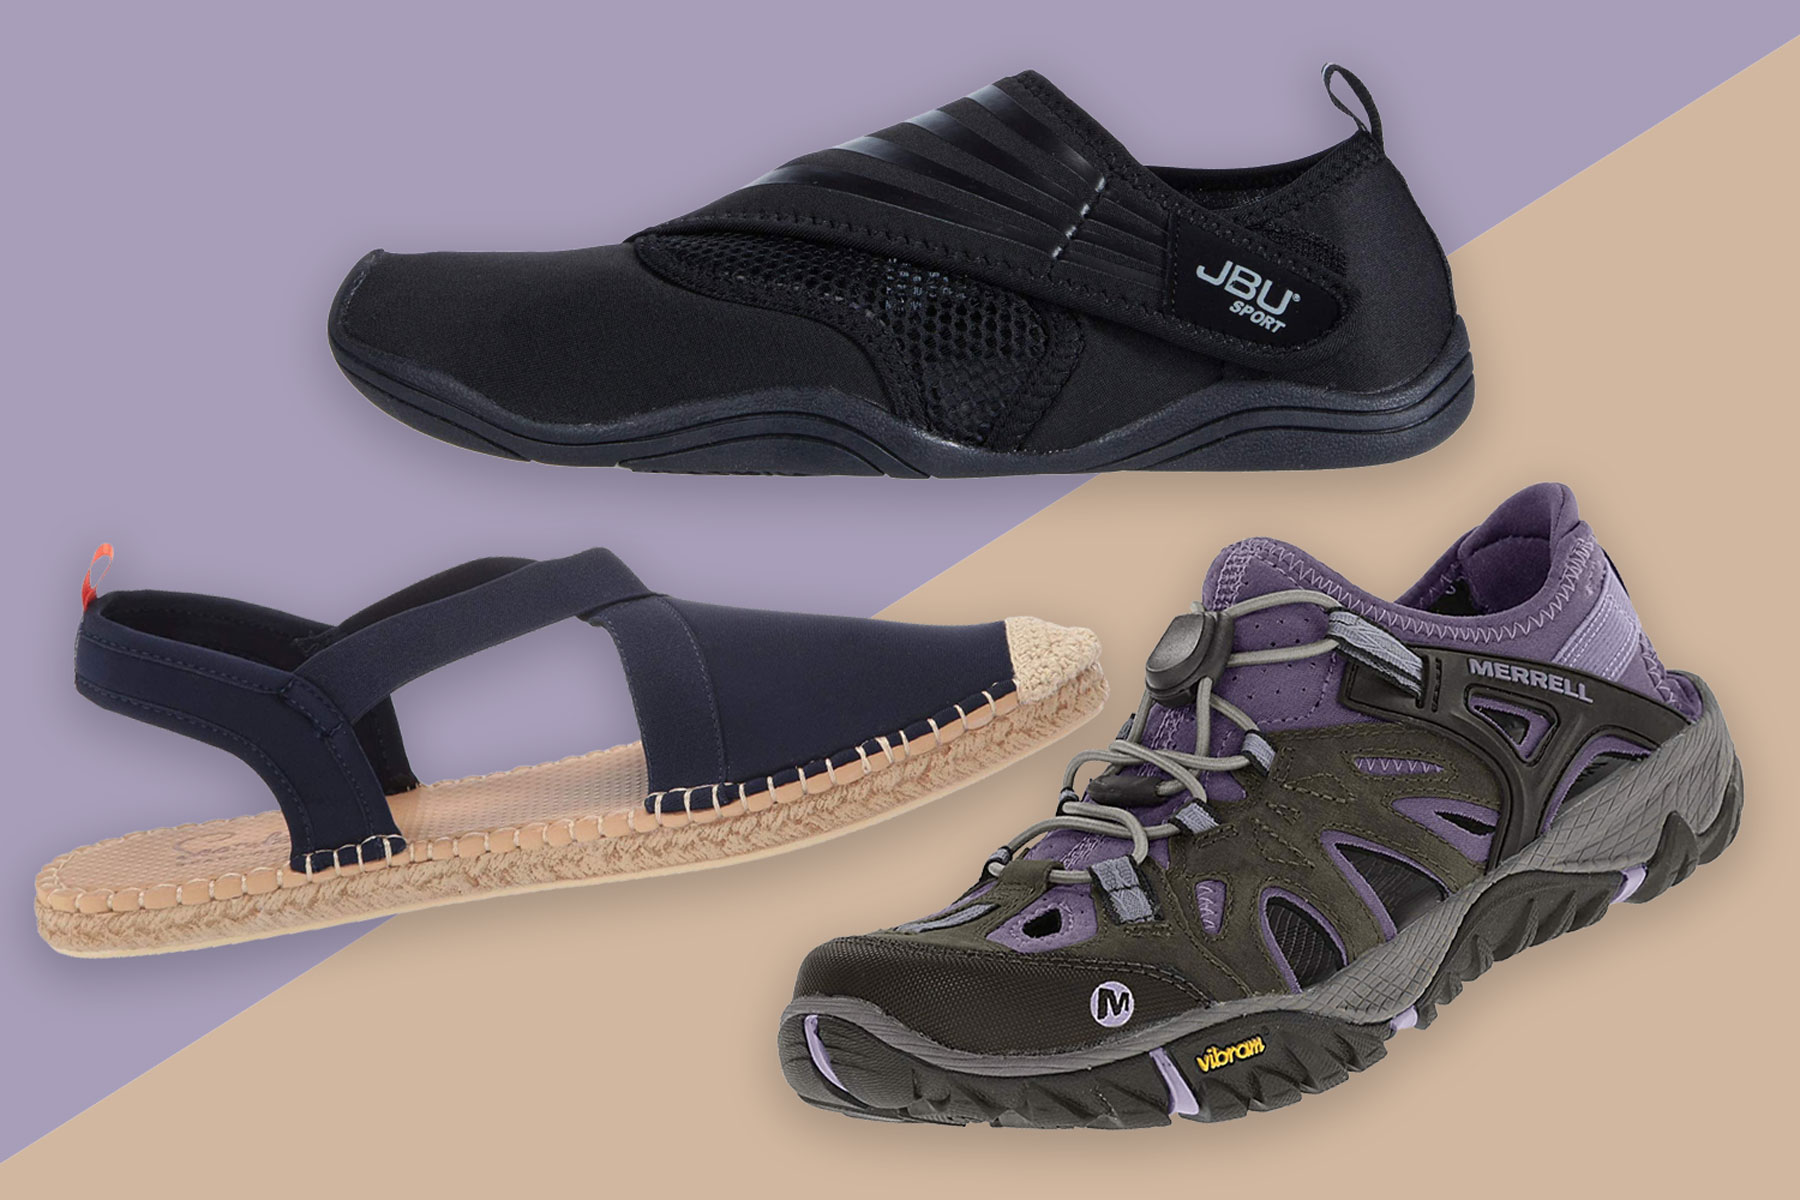 The Best Water Shoes for Women in 2020